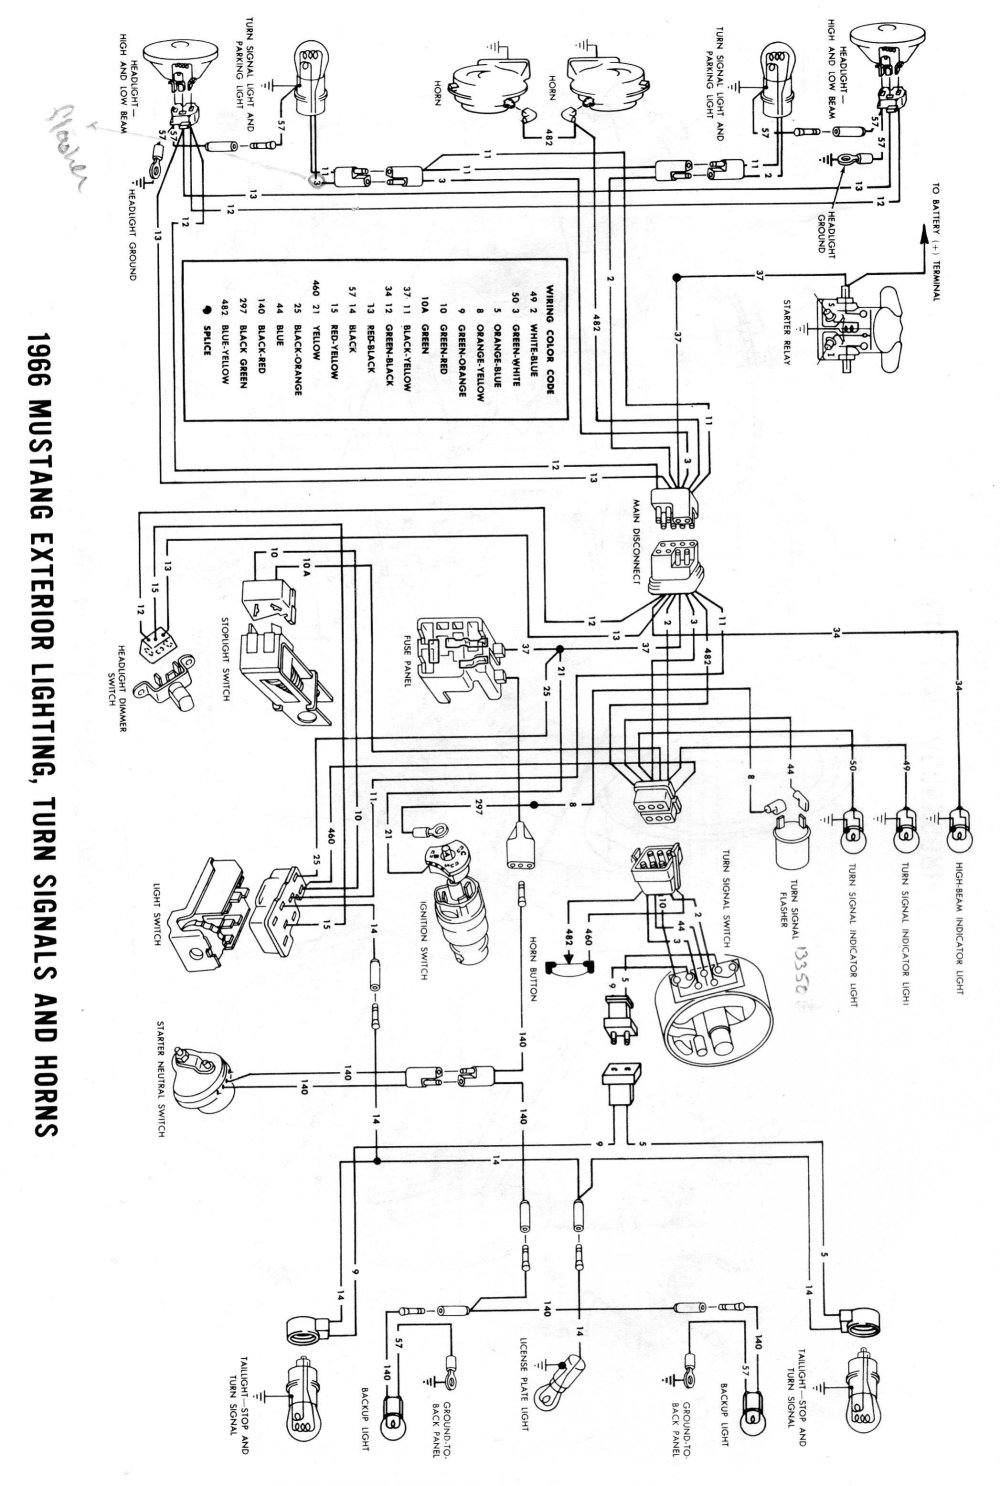 medium resolution of 72 mustang wiring diagram wiring diagrams scematic mustang air conditioning diagram 70 mustang horn wiring diagram